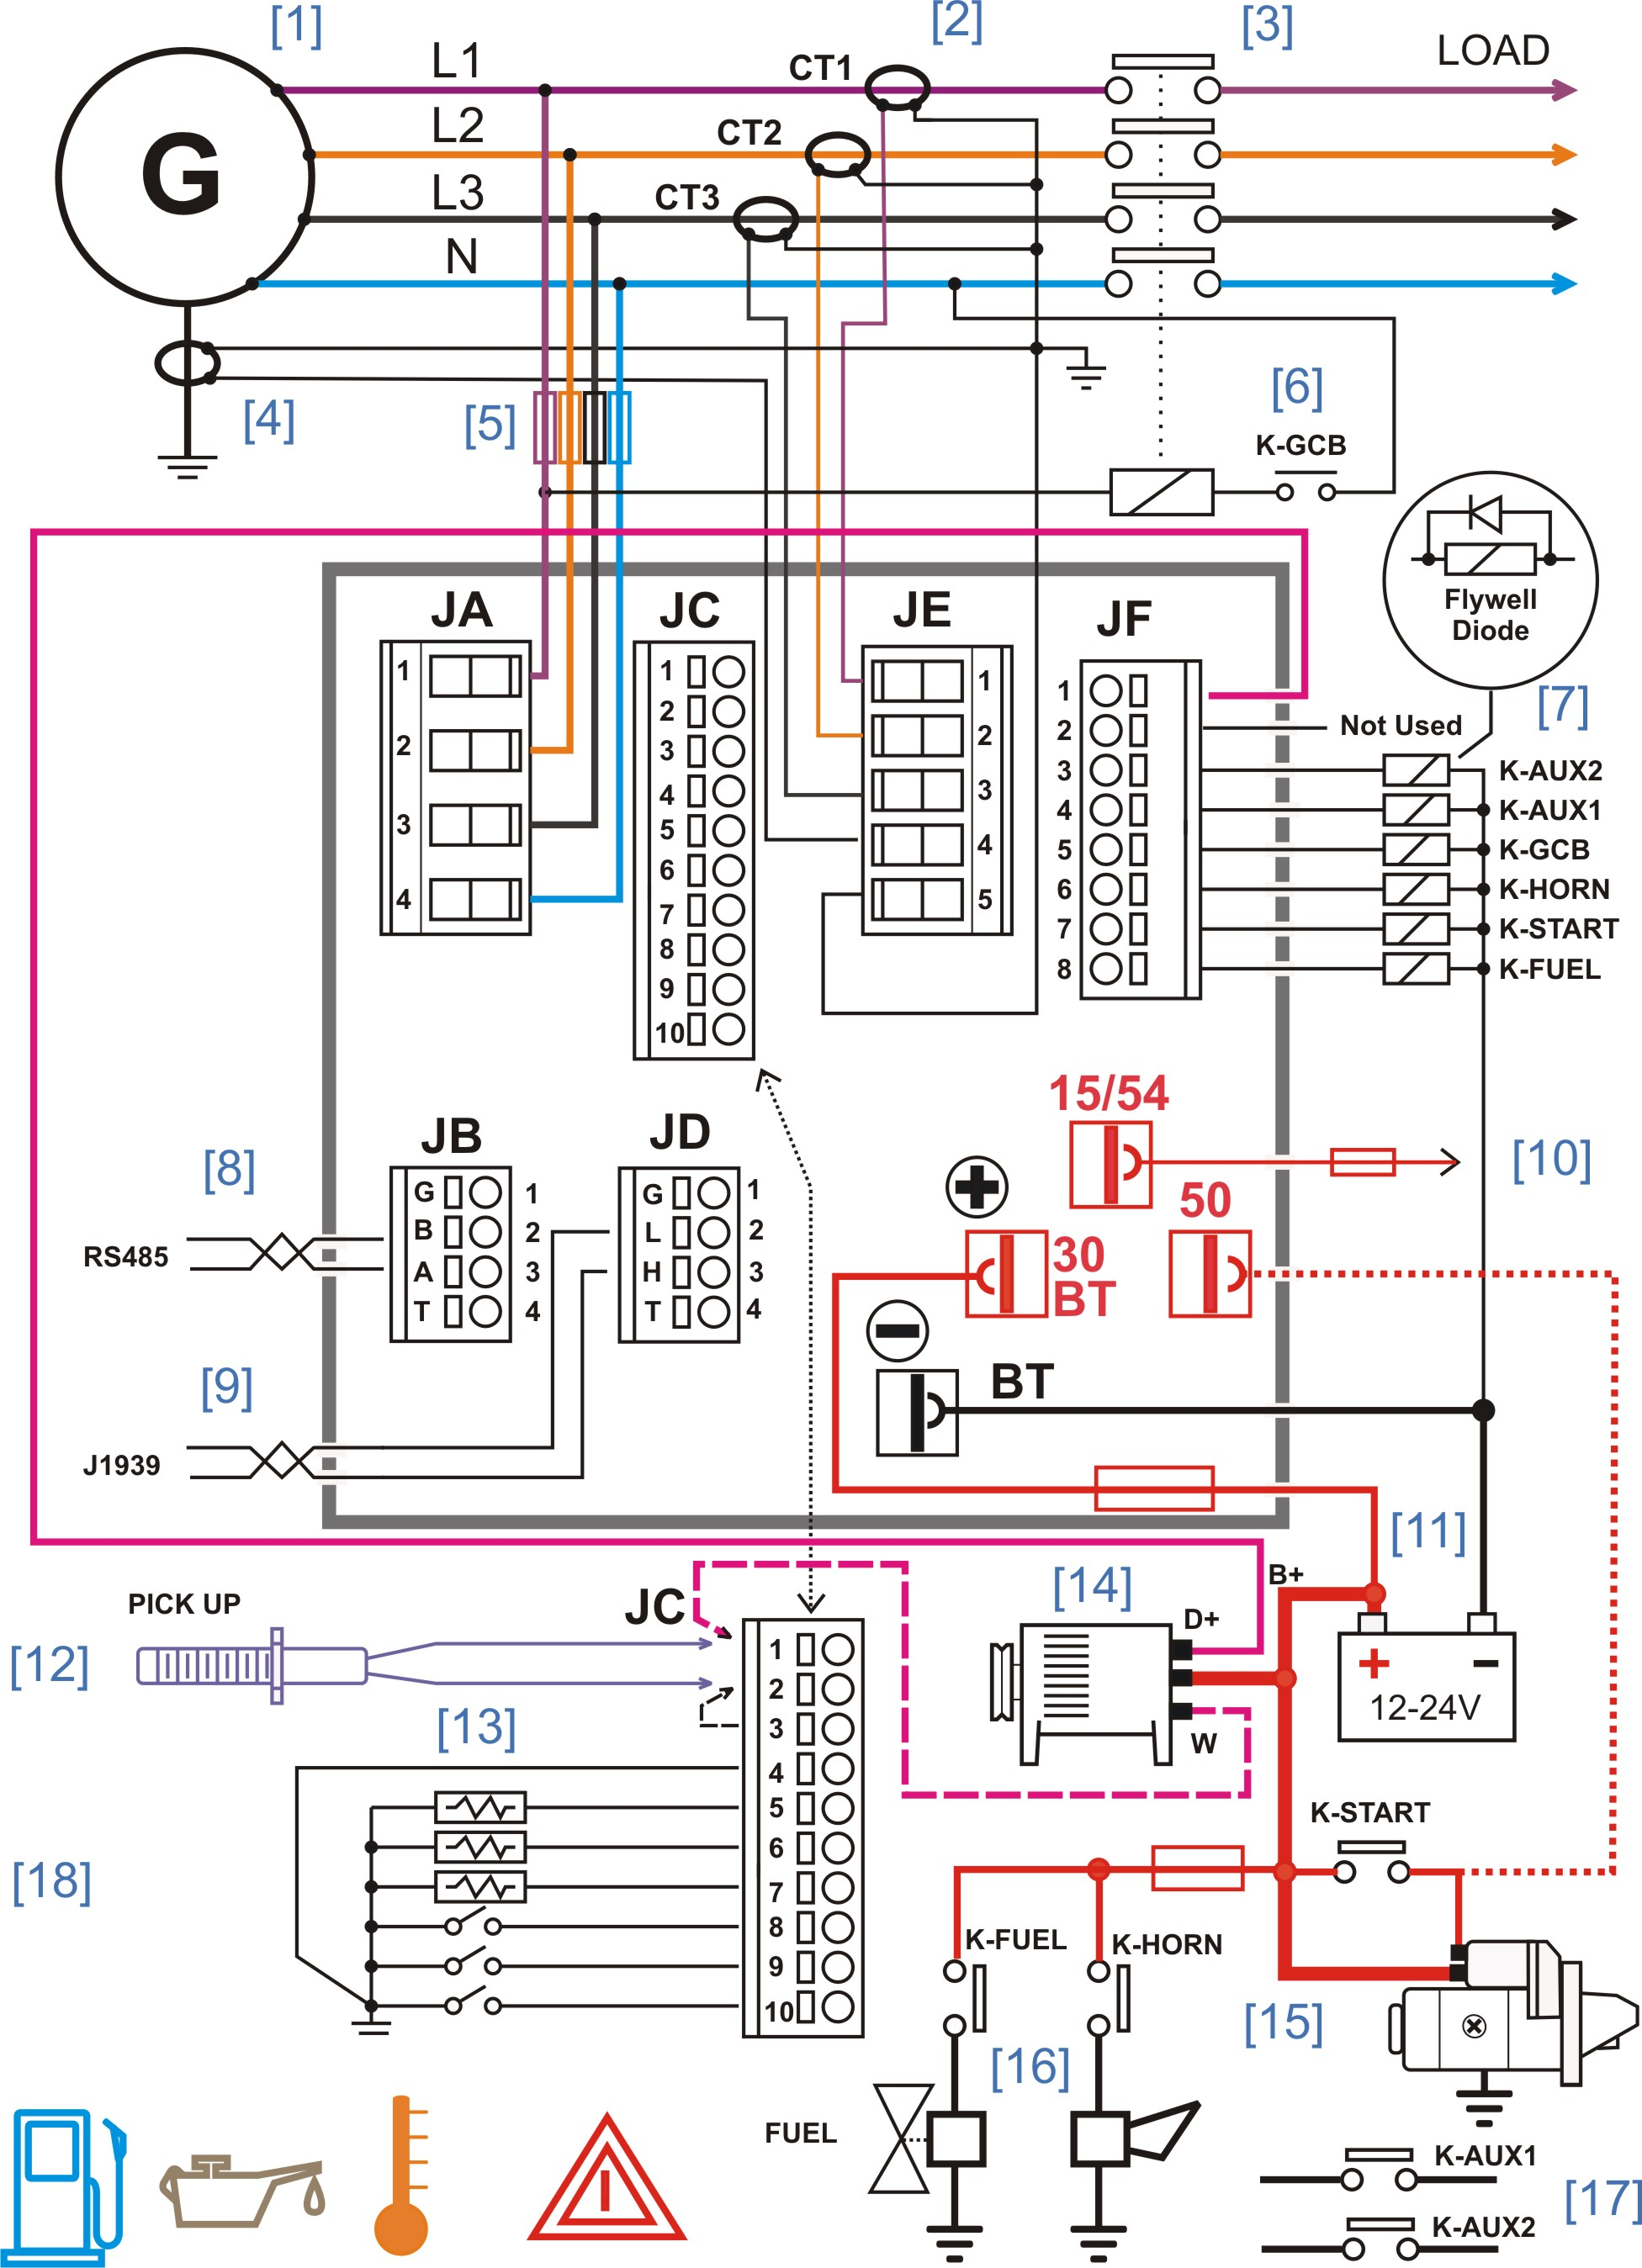 generator controller wiring diagram genset controller rh bernini design com automotive generator wiring diagram china generator wiring diagram